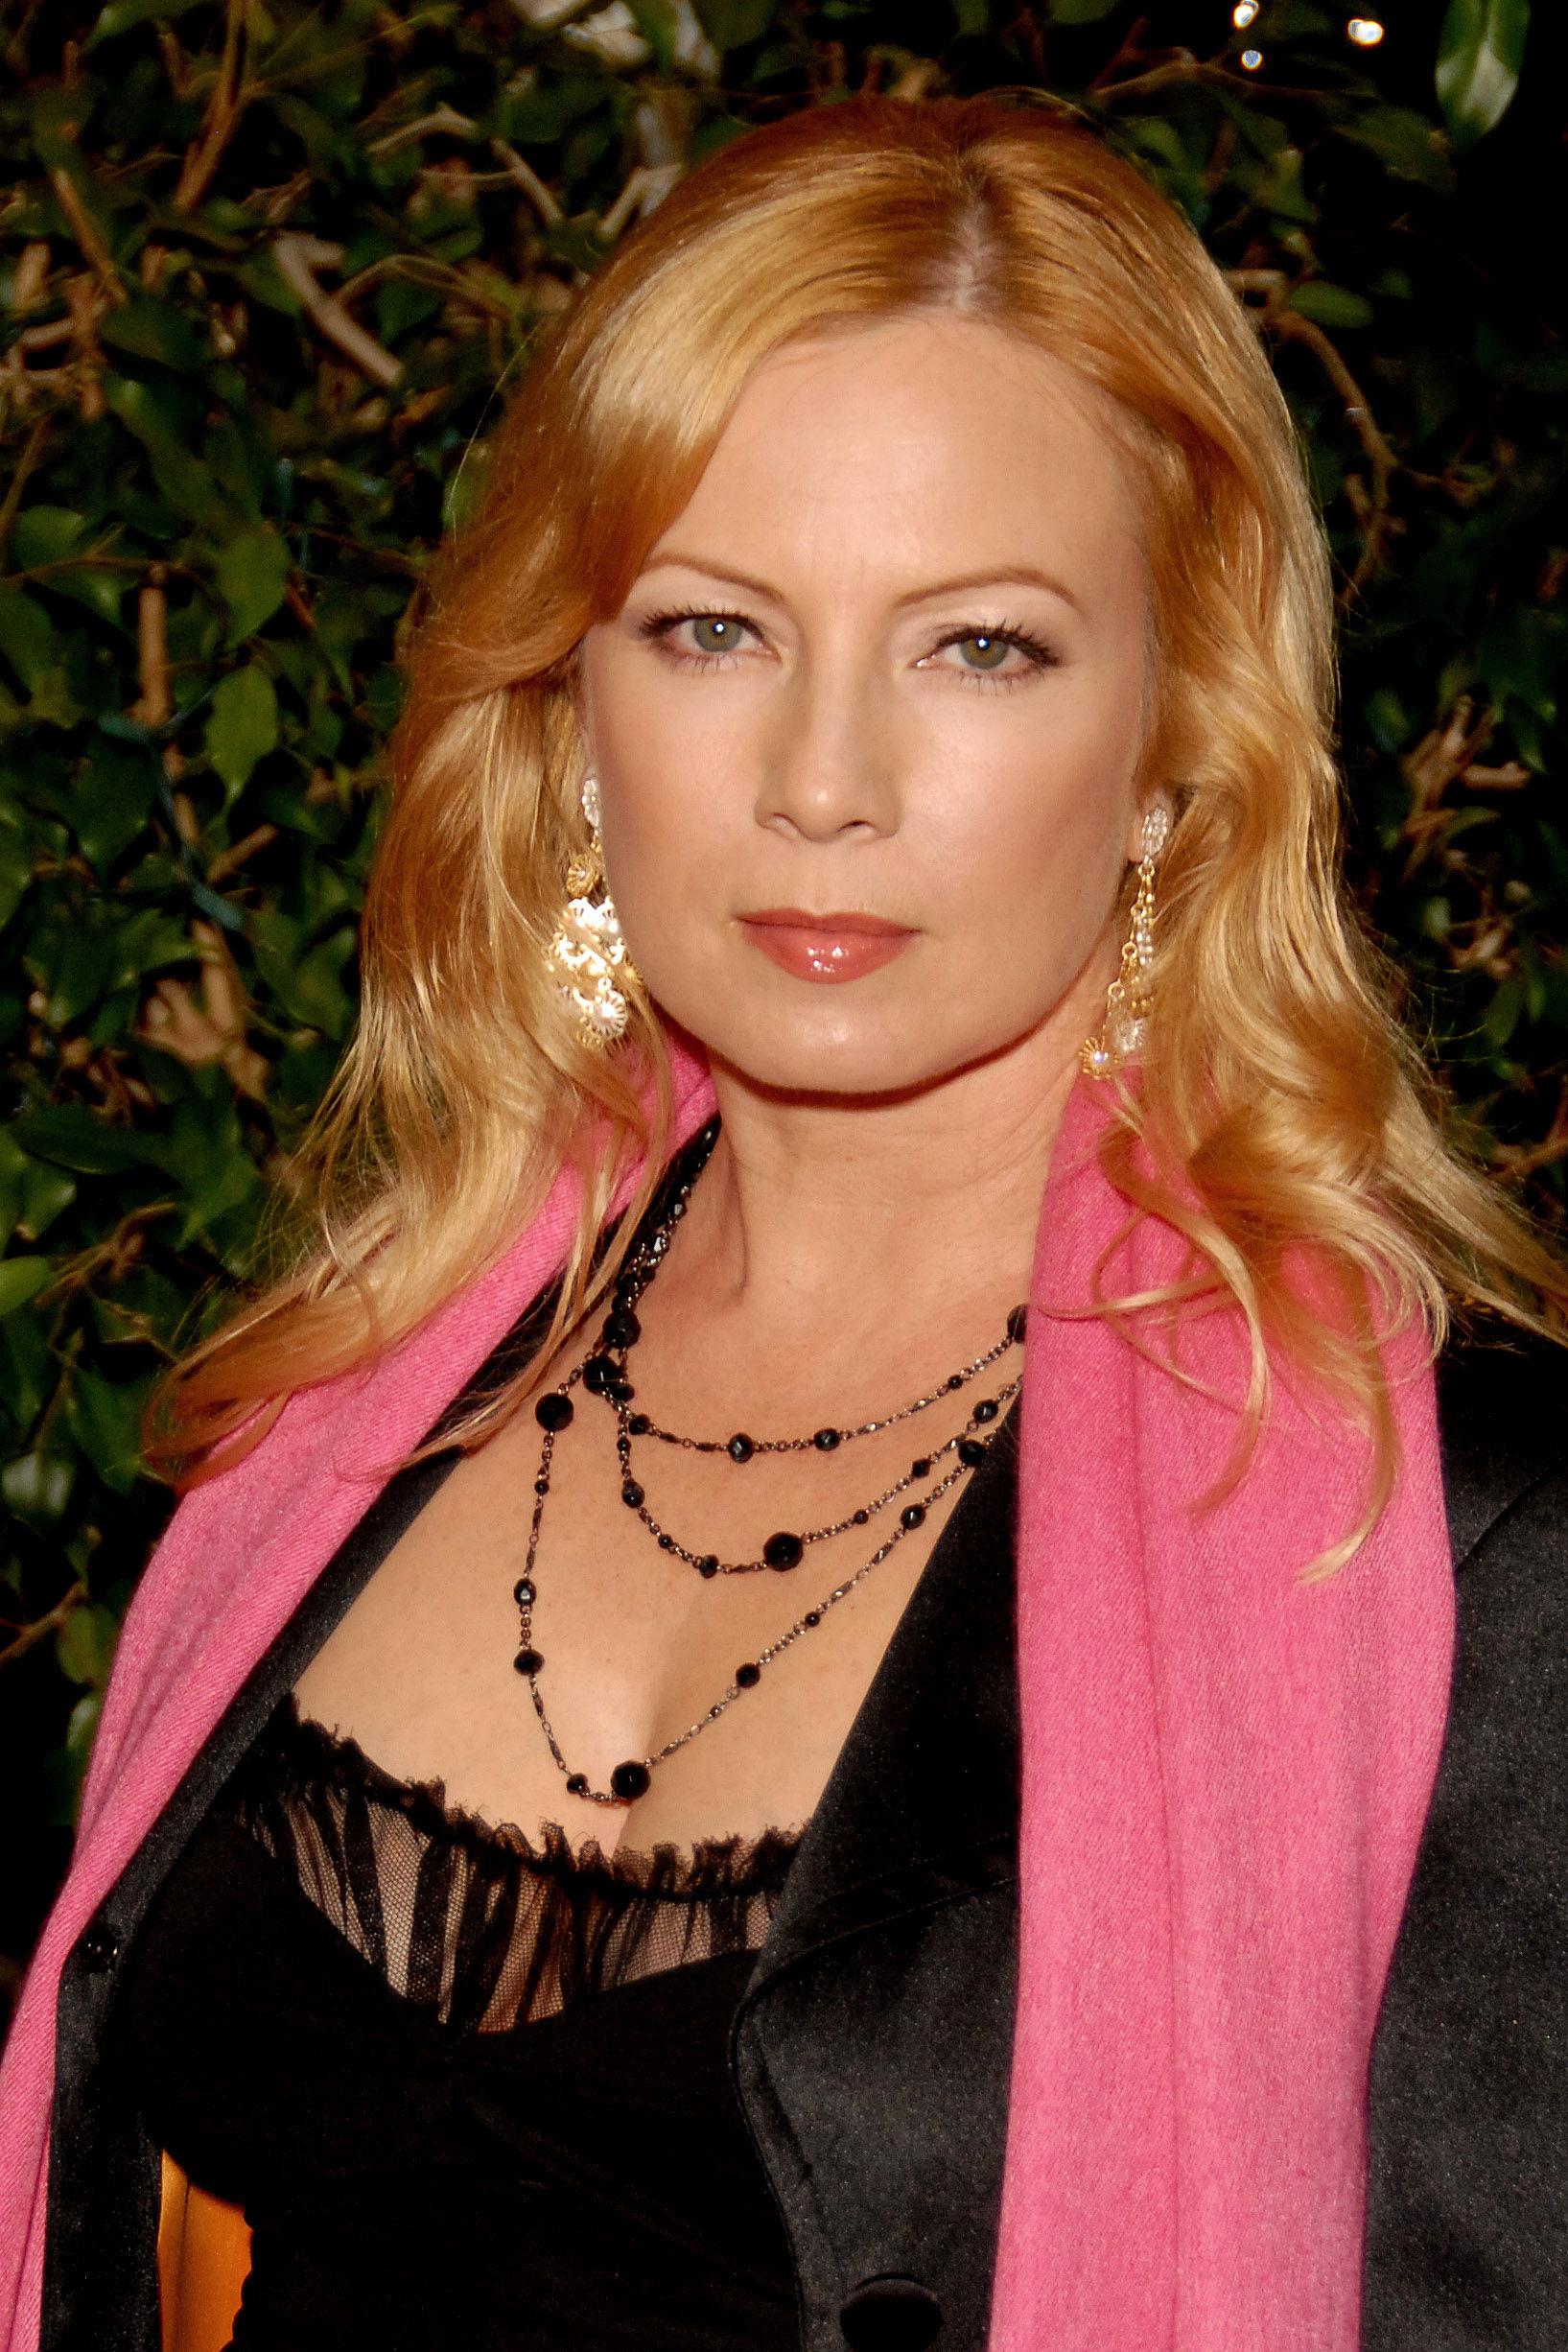 Photo of Traci Lords: American mainstream and pornographic actress, producer, film director, writer and singer